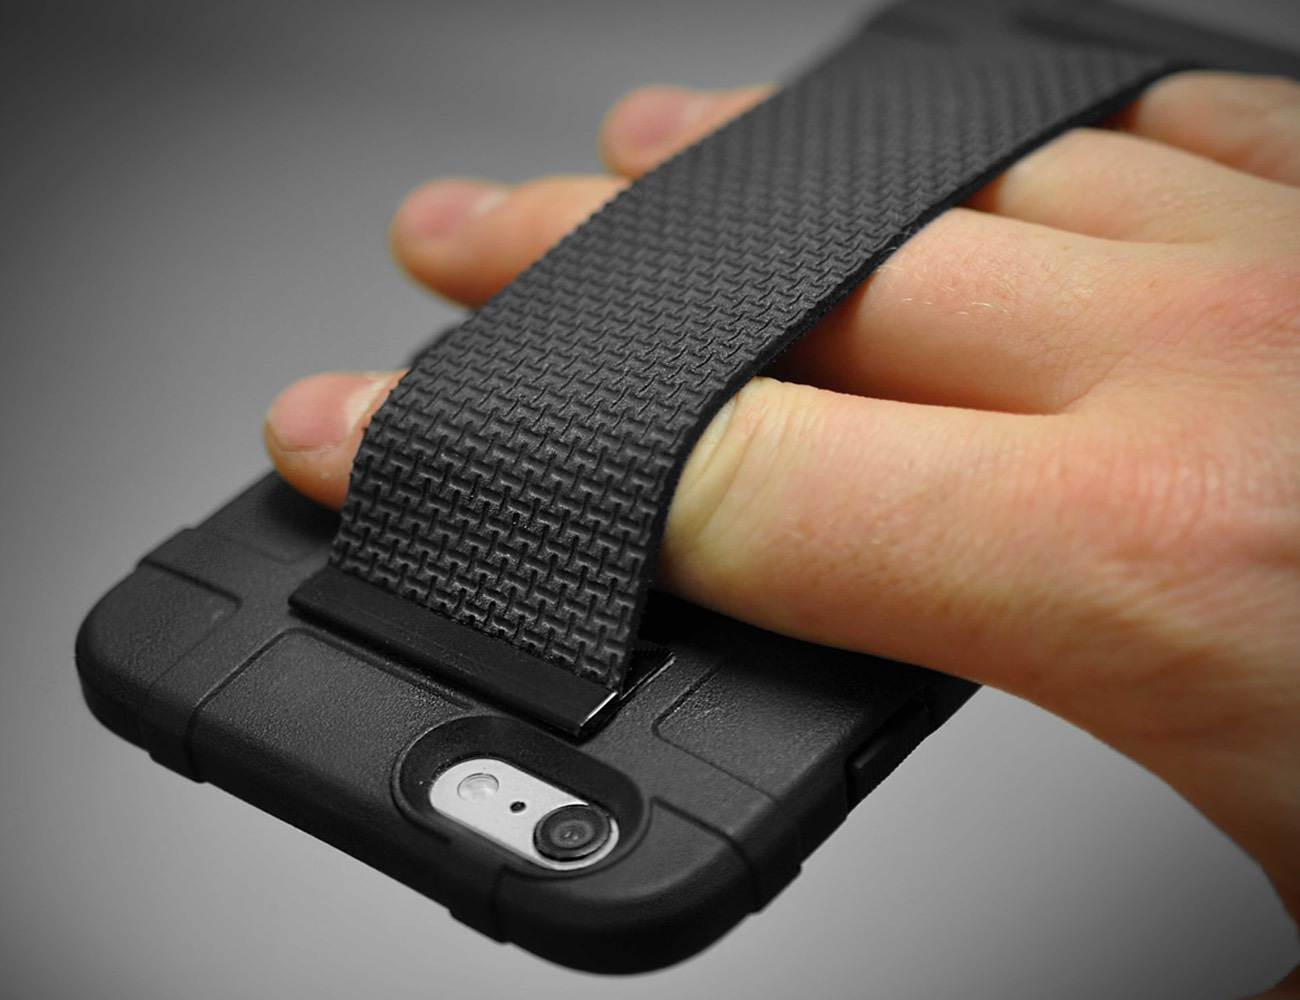 inslip-phone-tablet-strap-01